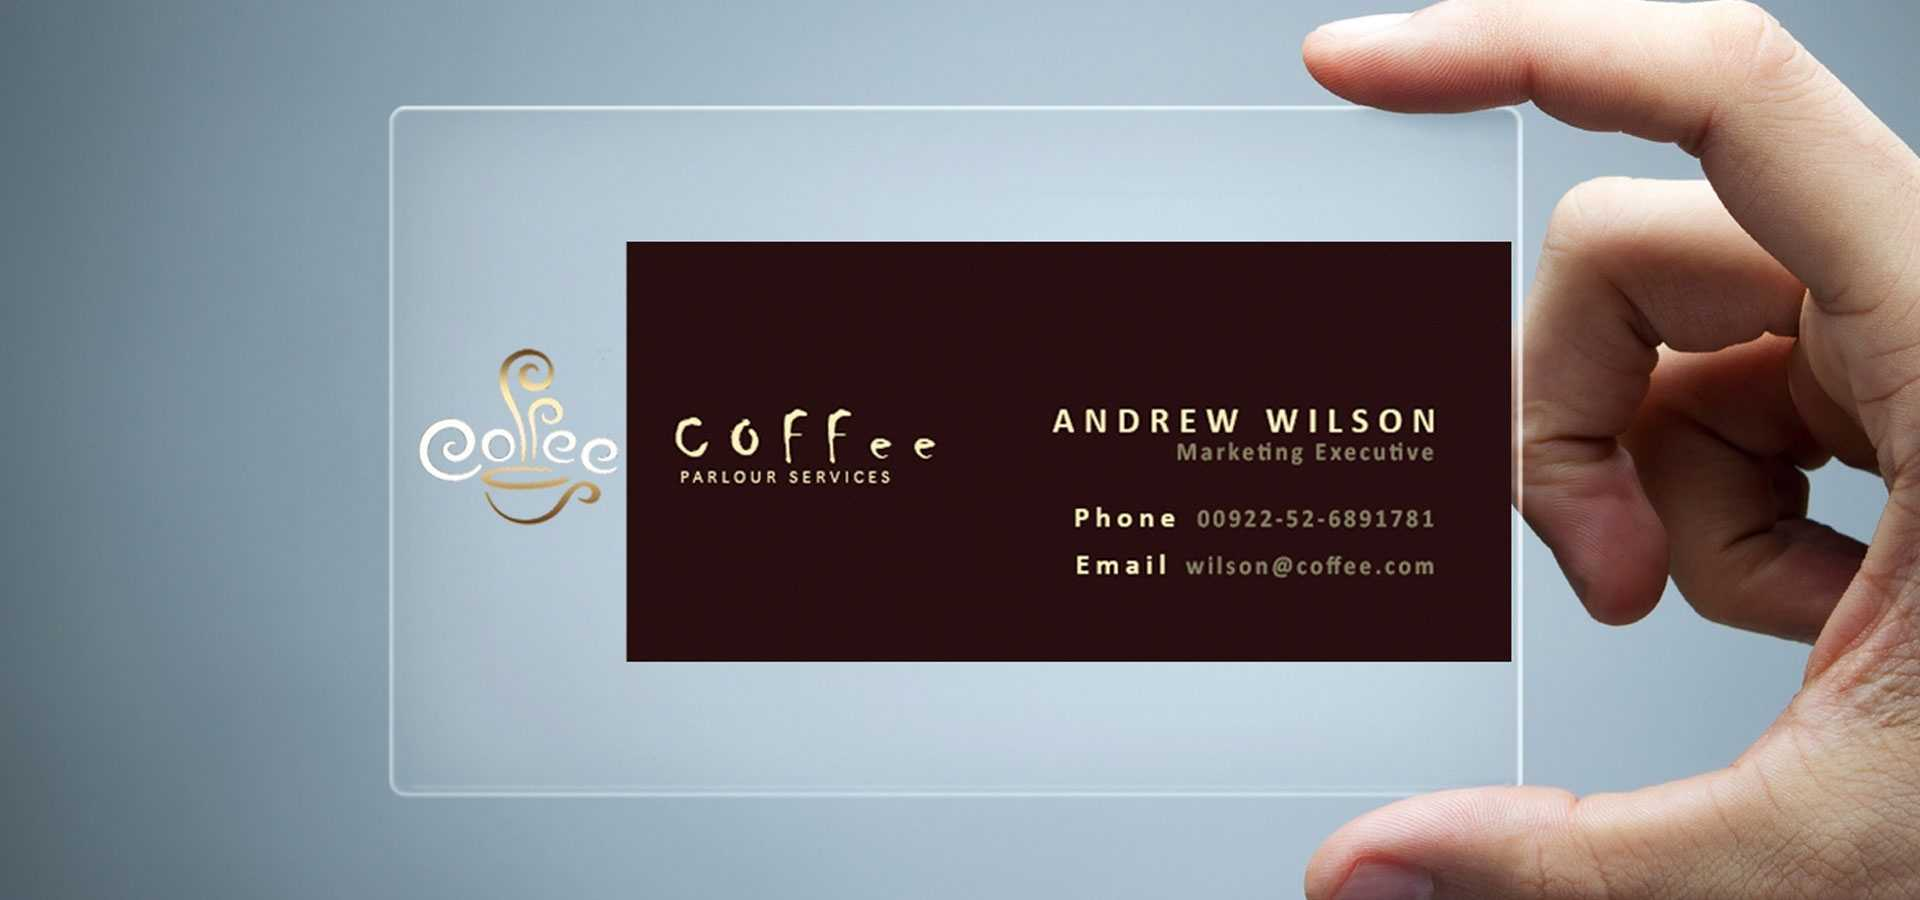 26+ Transparent Business Card Templates - Illustrator, Ms With Regard To Microsoft Templates For Business Cards